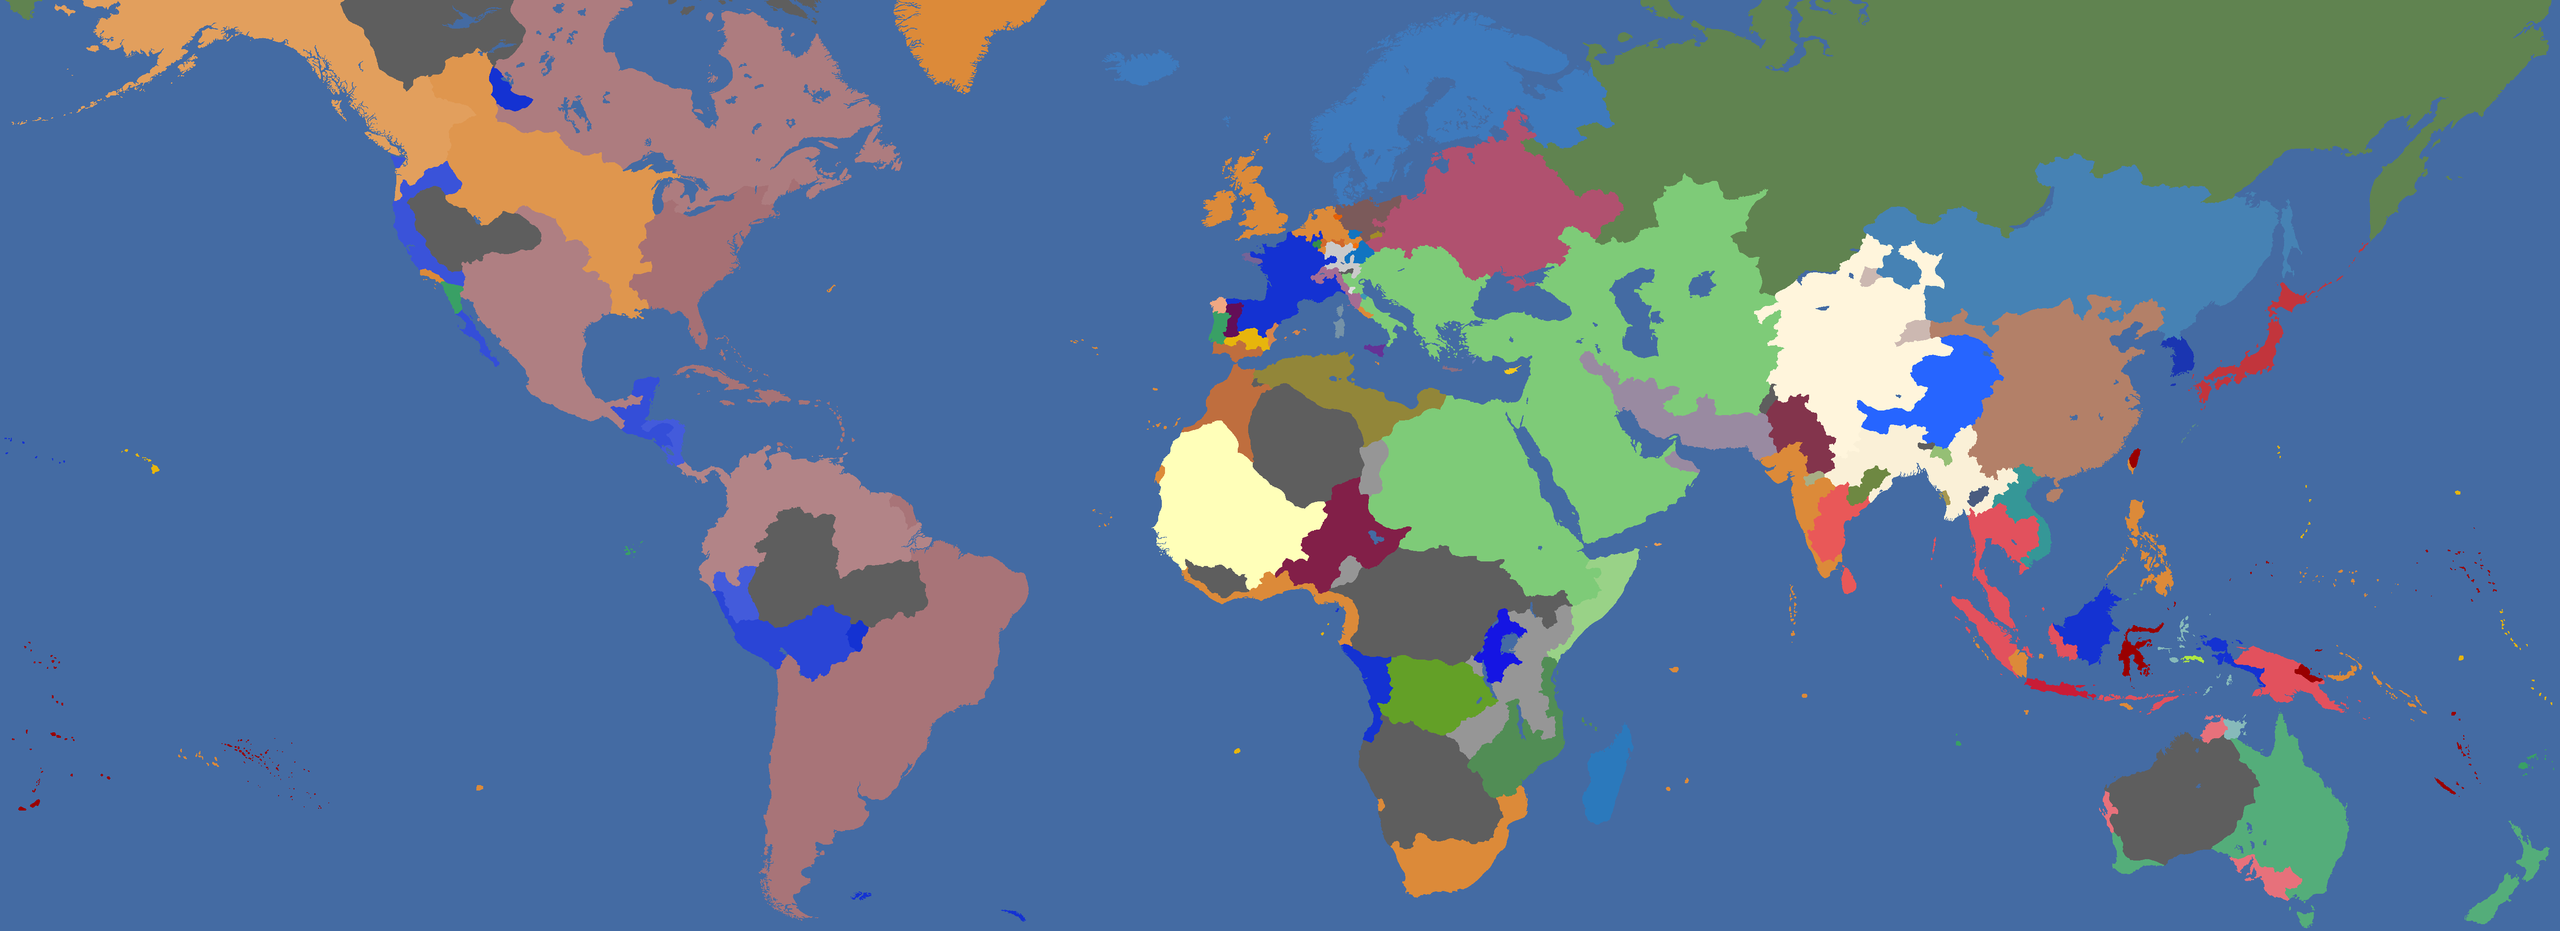 Eu4 Map Ned 1811 06 19 1